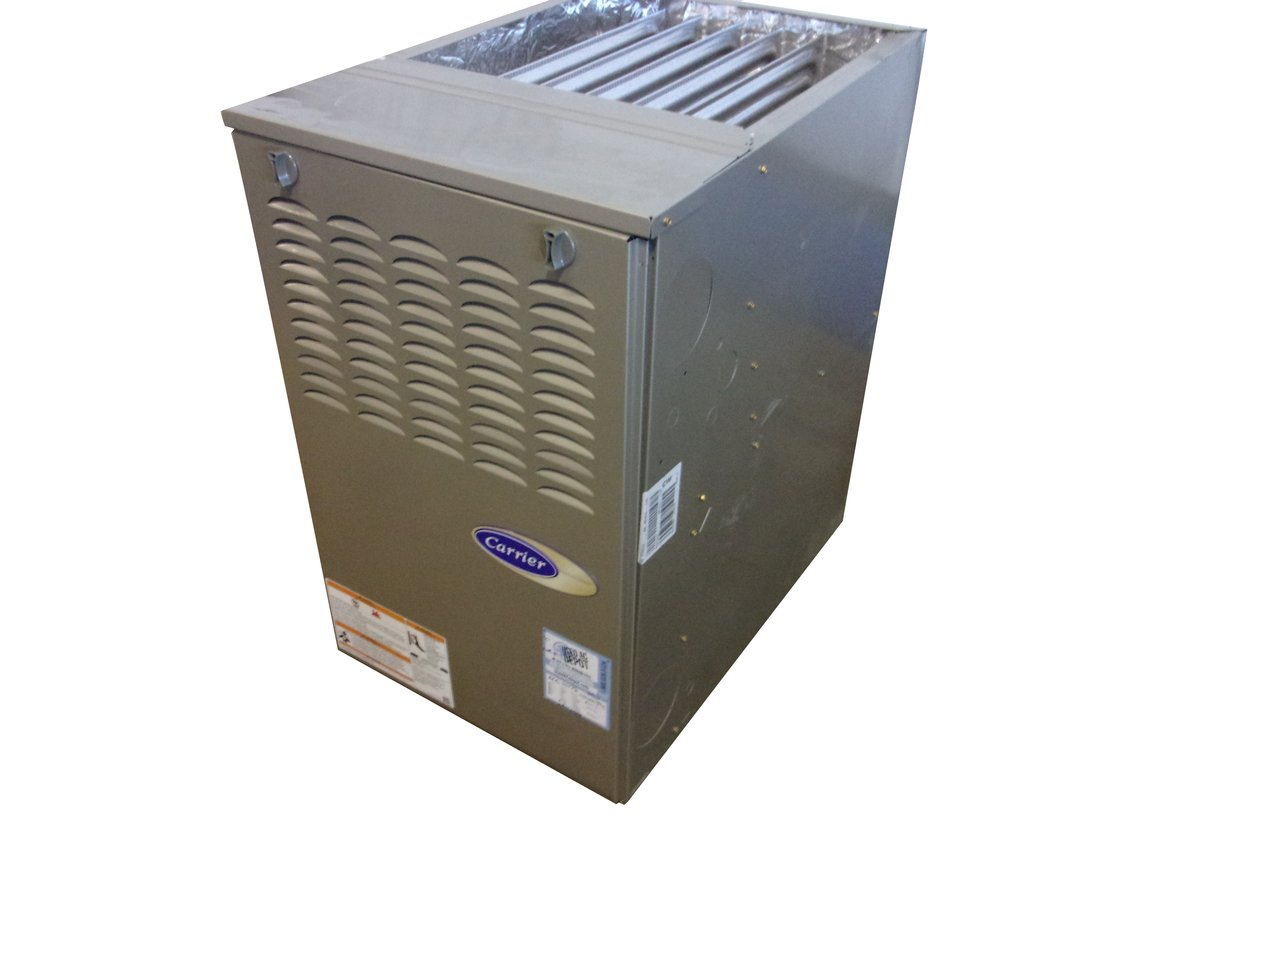 CARRIER ''Scratch & Dent'' Central Air Conditioner Furnace 58CTW110-1-22 ACC-10172